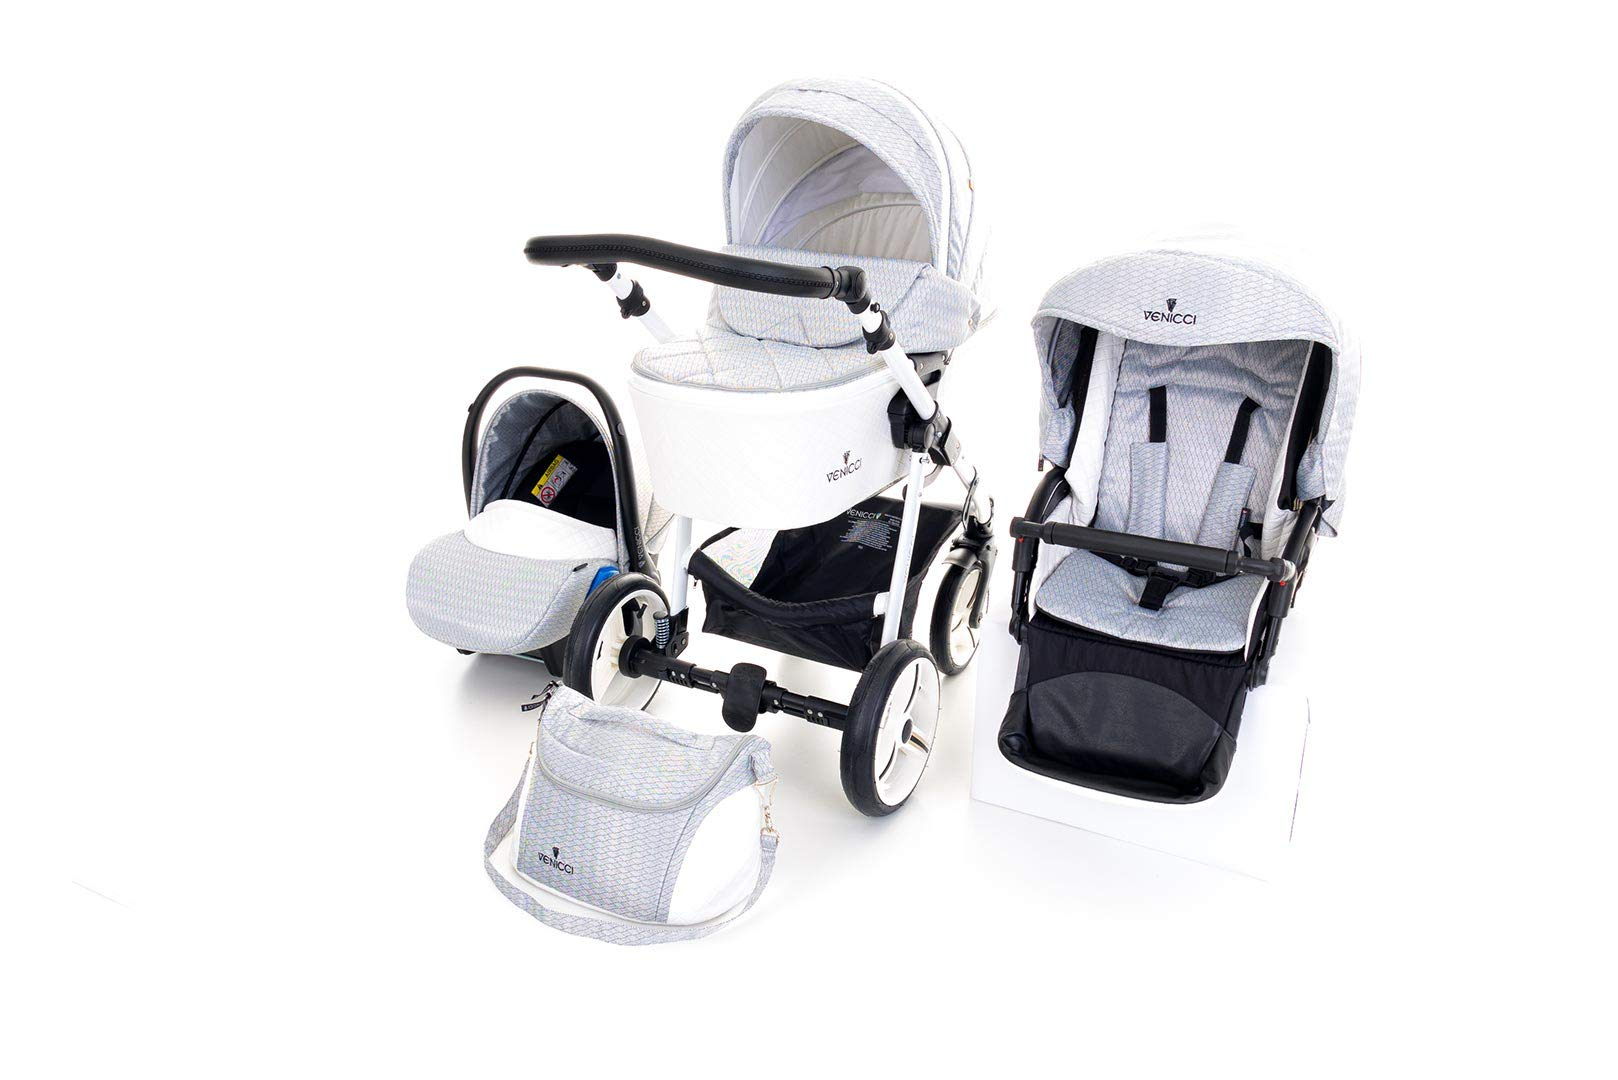 Venicci Pure 3-in-1 Travel System - Stone Grey - with Carrycot + Car Seat + Changing Bag + Apron + Raincover + Mosquito Net + 5-Point Harness and UV 50+ Fabric + Car Seat Adapters + Cup Holder  3 in 1 Travel System with included Group 0+ Car Seat Suitable for your baby from birth until 36 months 5-point harness to enhance the safety of your child 6